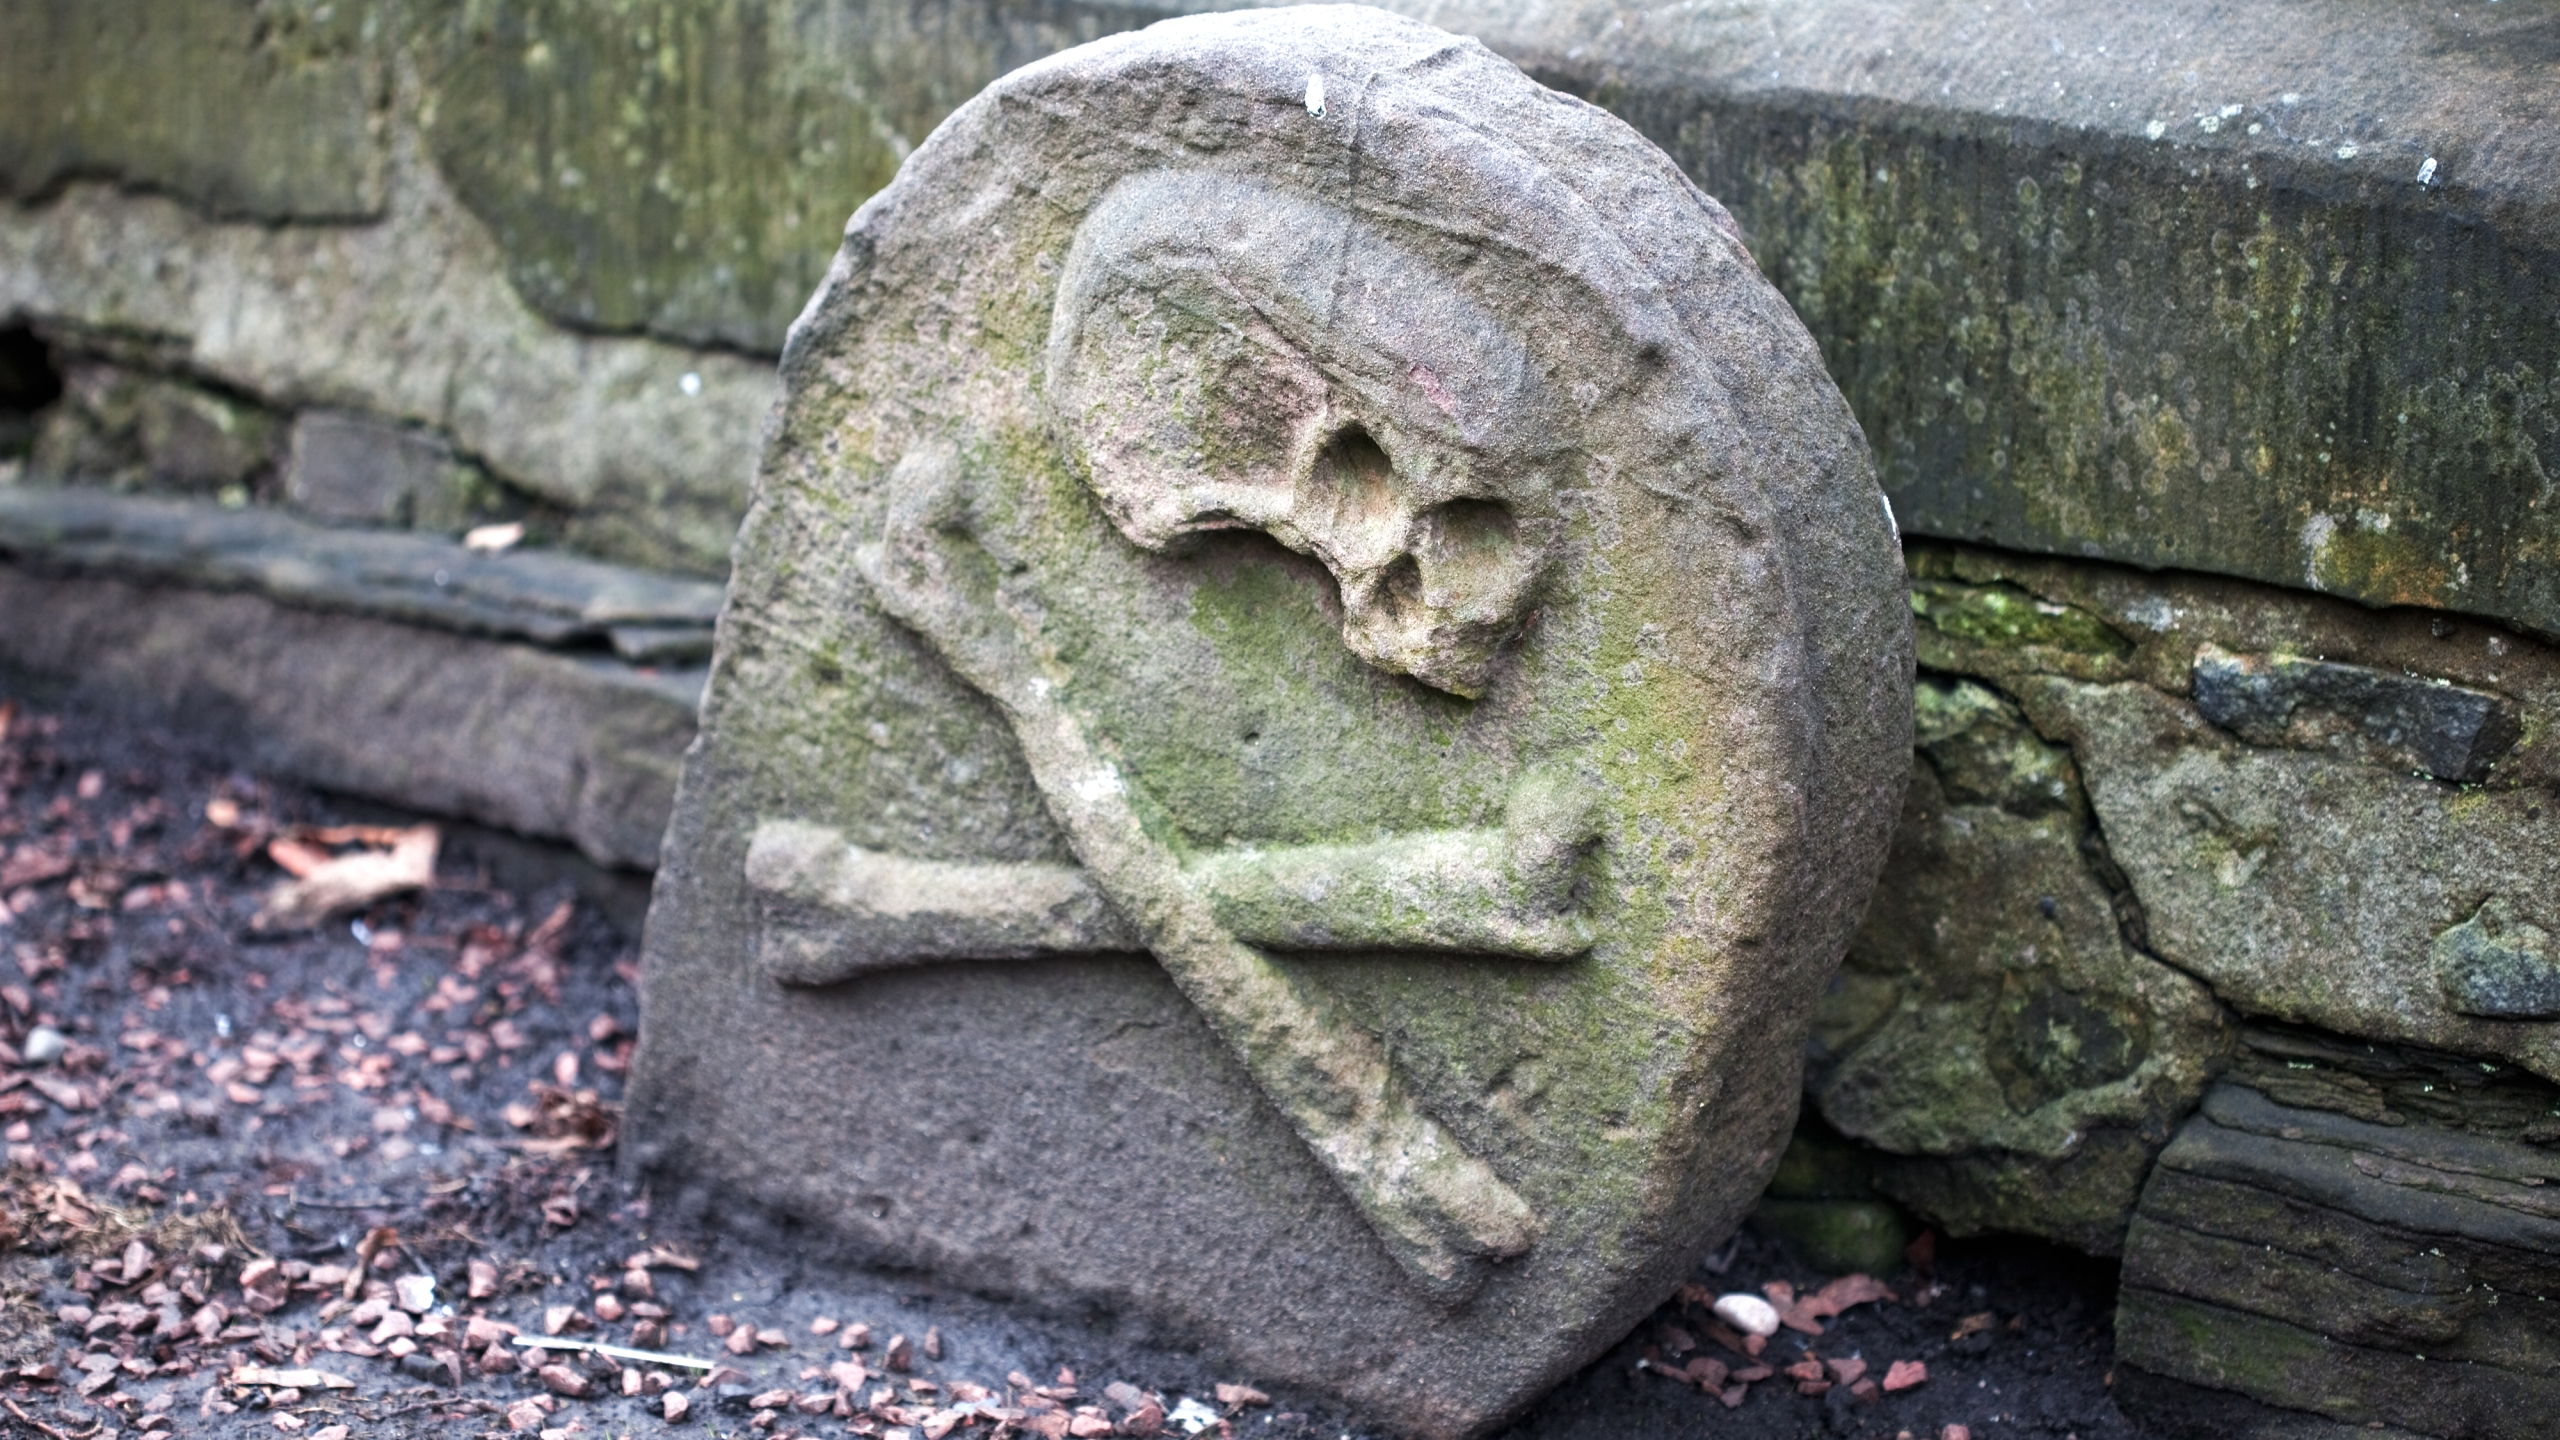 Grave of Black Death victim, Greyfriars cemetery, Edinburgh. (Getty Images)